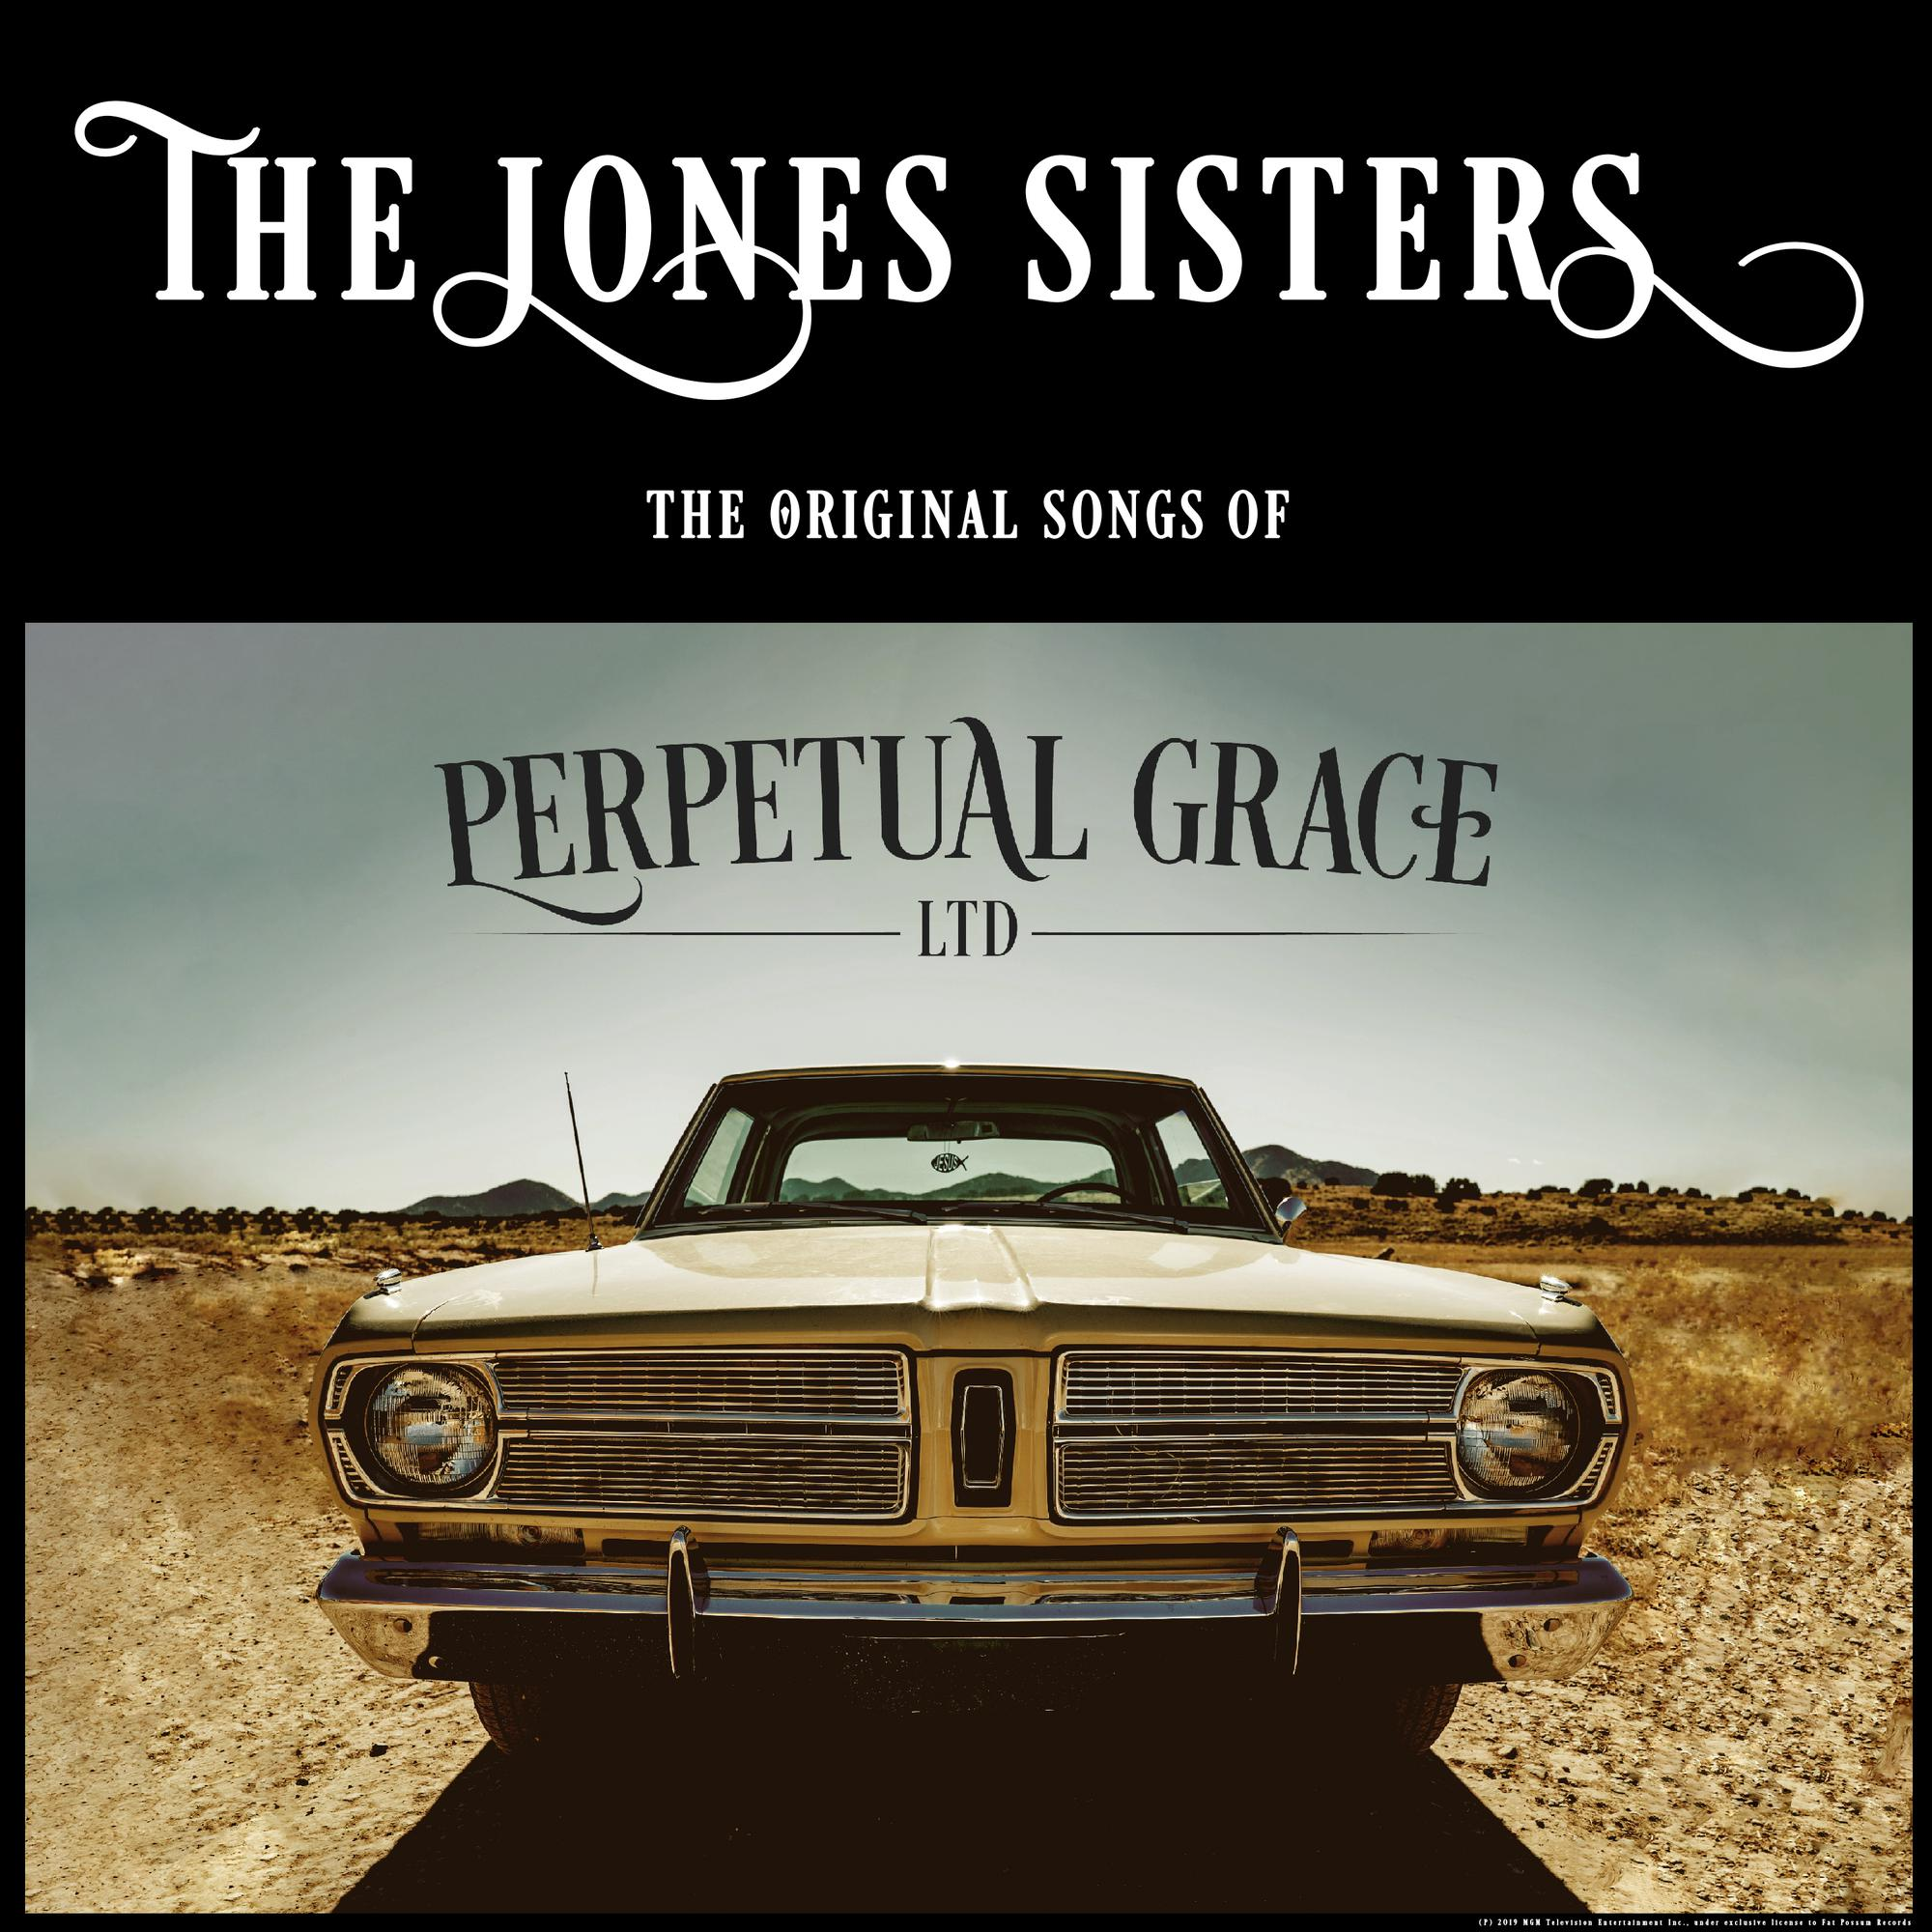 The Jones Sisters - Perpetual Grace, LTD Soundtrack [RSD Drops Oct 2020]